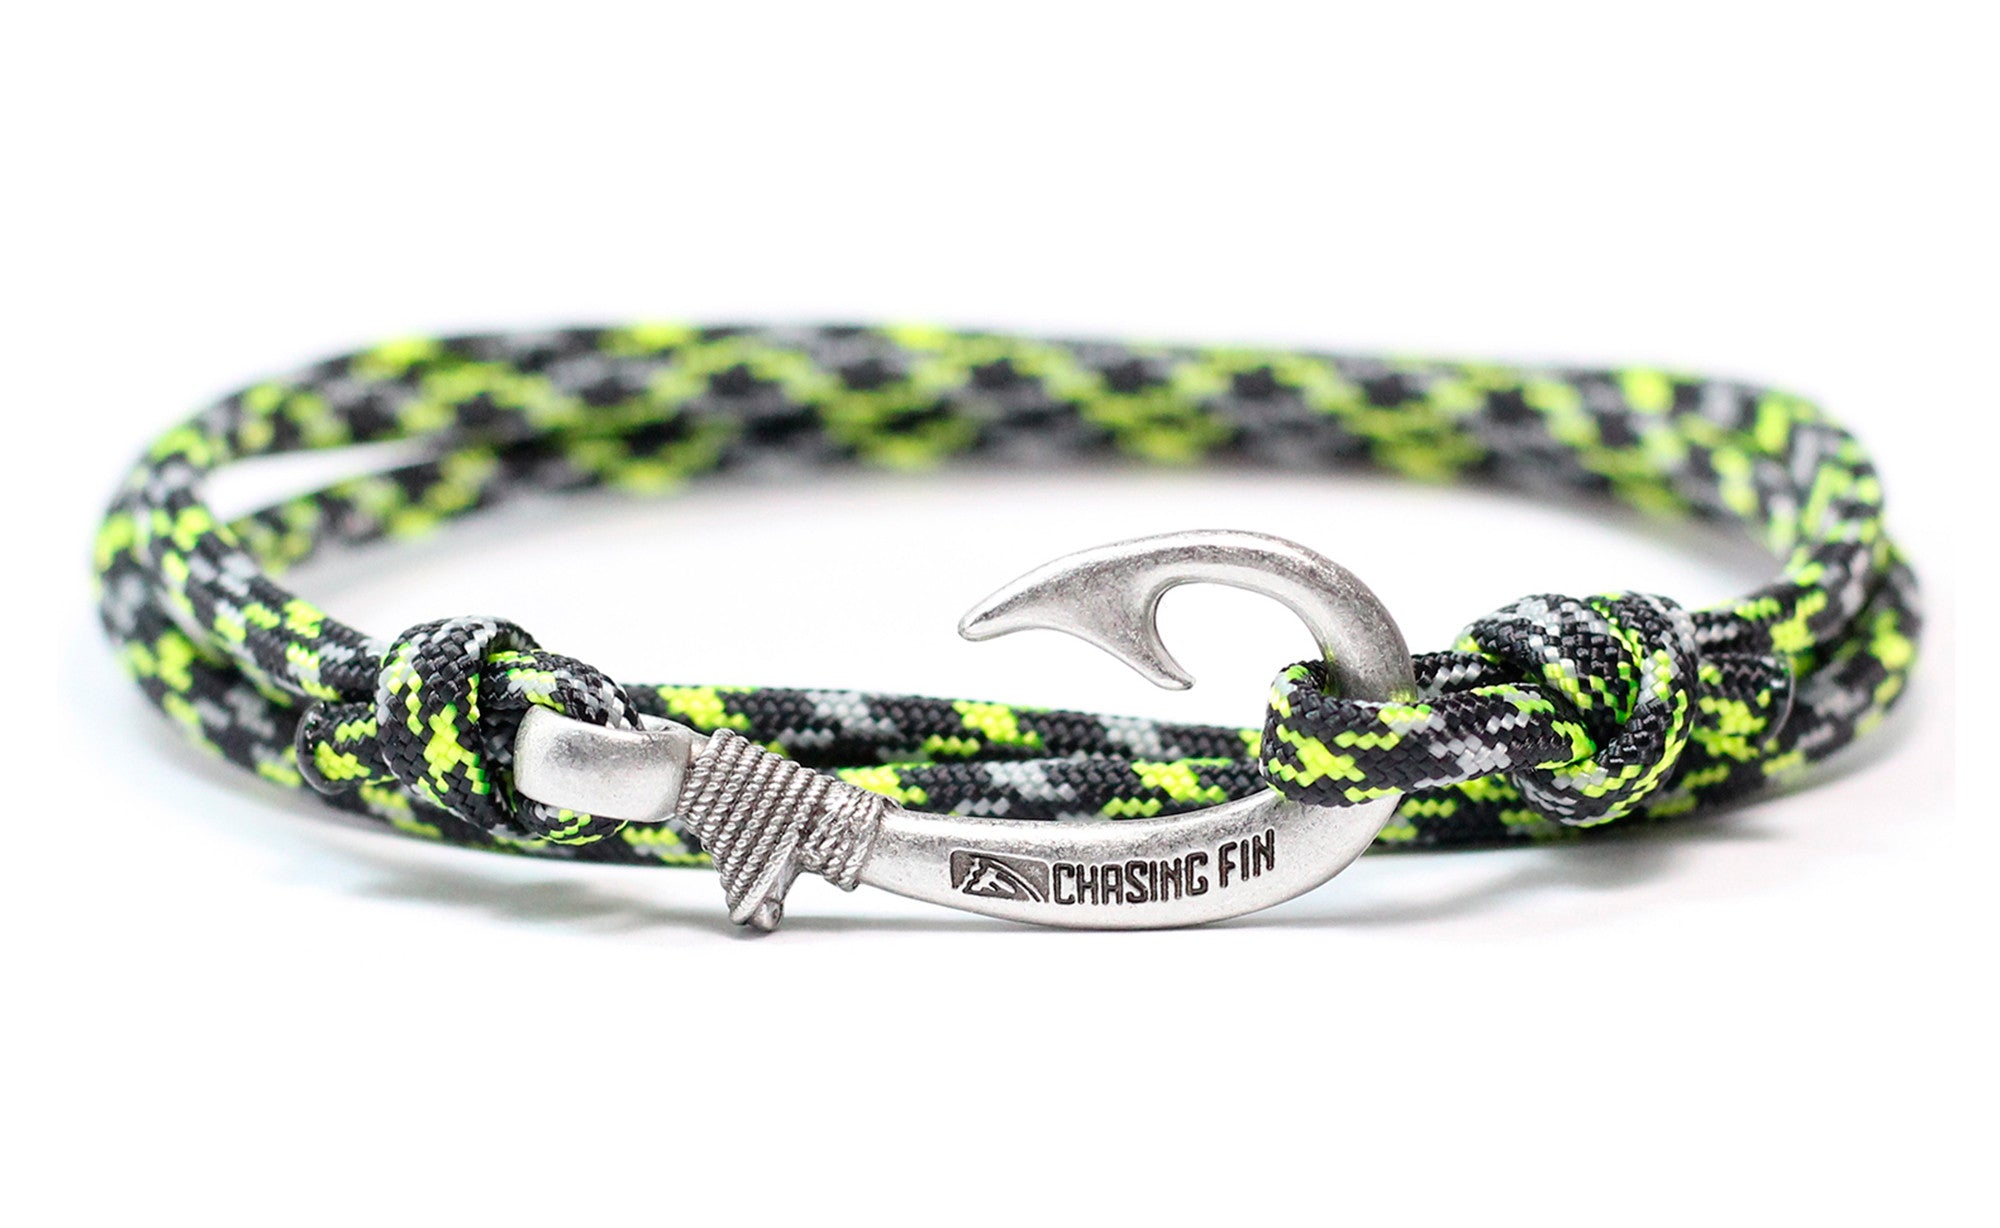 Ninja Warrior Fish Hook Bracelet